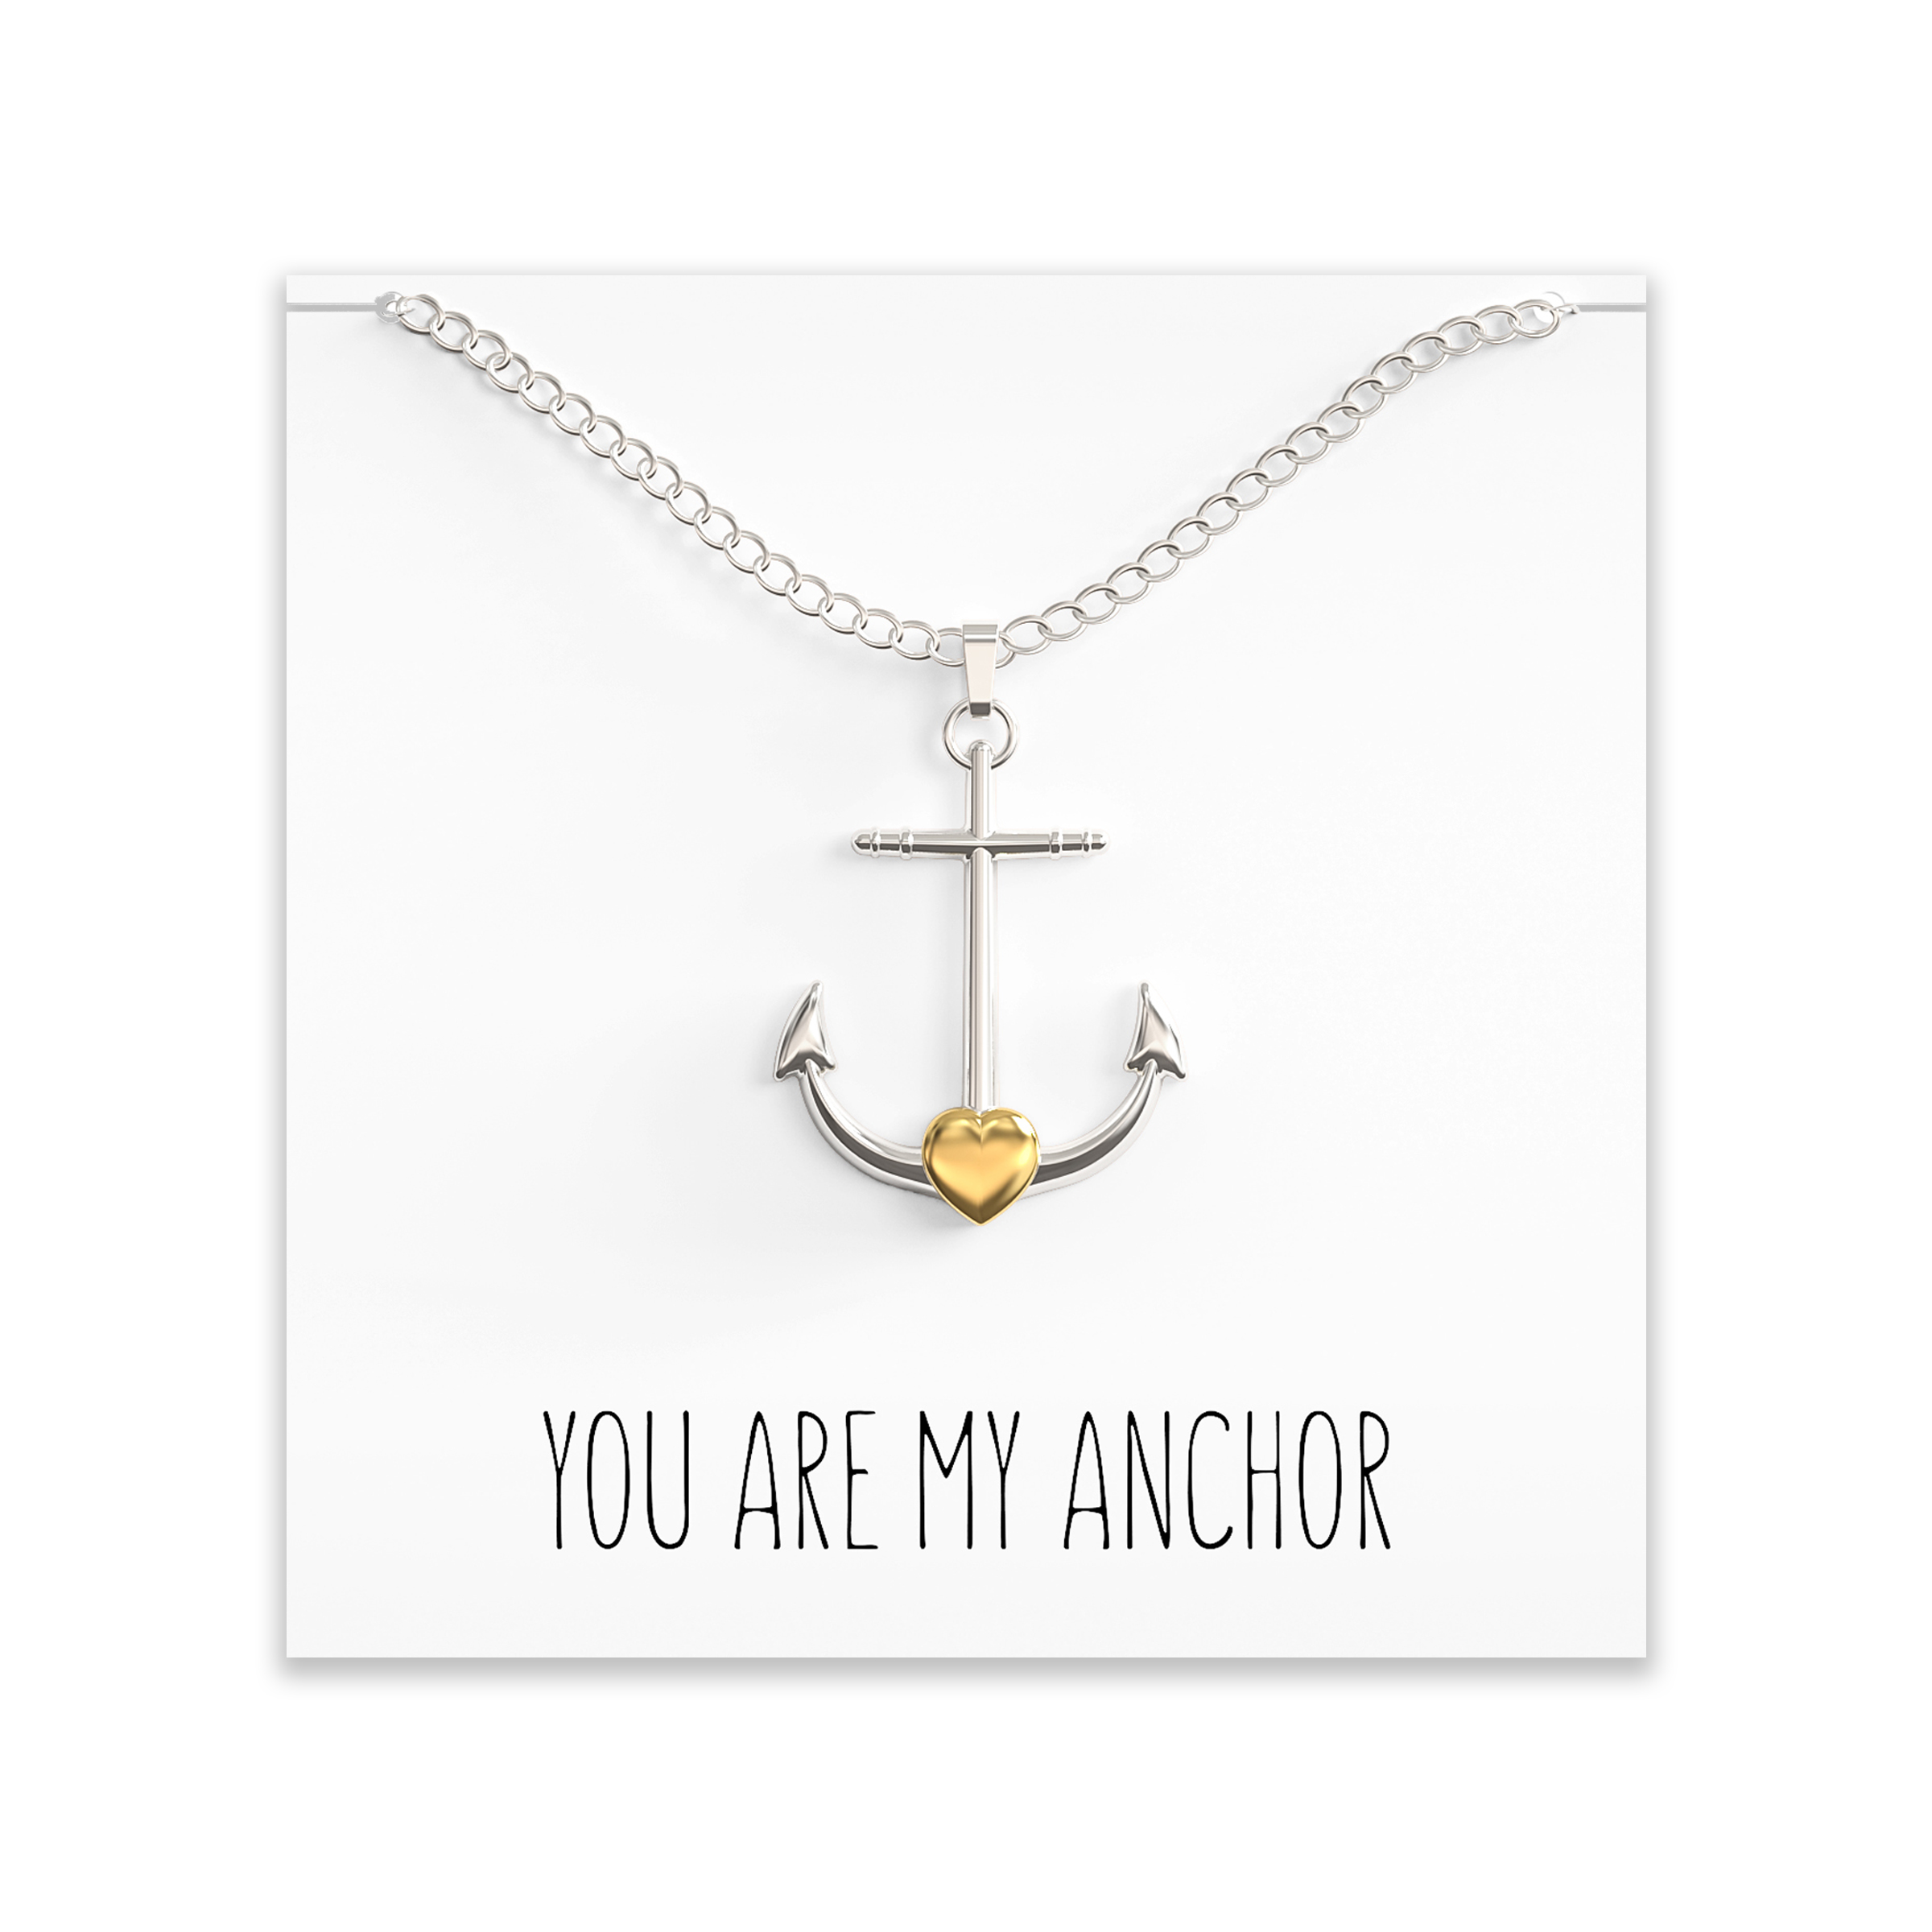 BFF gift Personalized necklace Silver anchor A77 Anchor necklace ANCHOR gift Nautical necklace Best friend necklace Love necklace